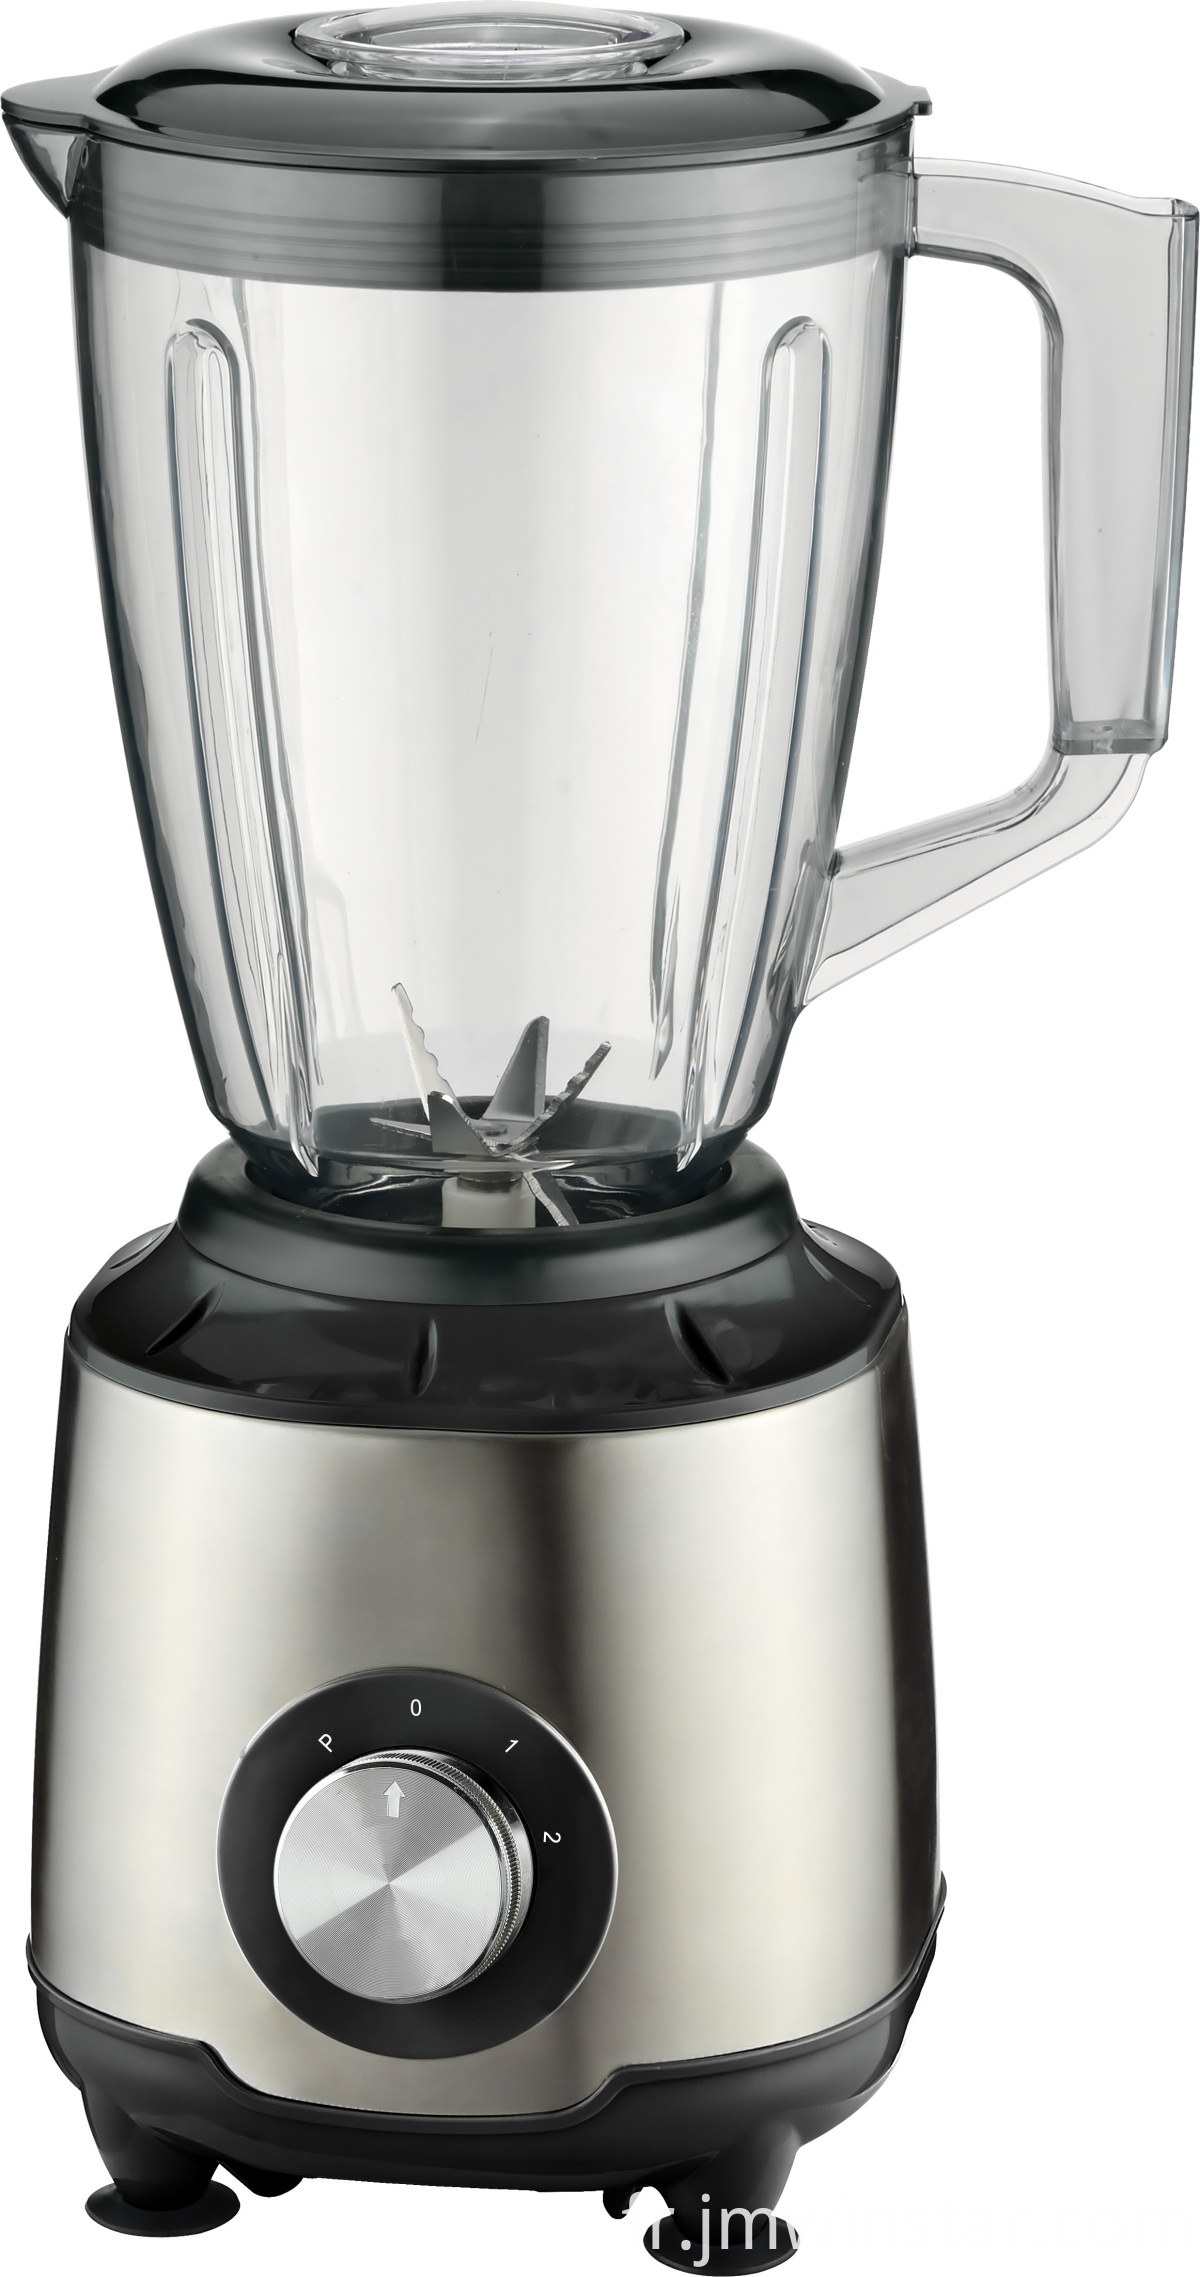 Strong Power 2 in 1 Blender